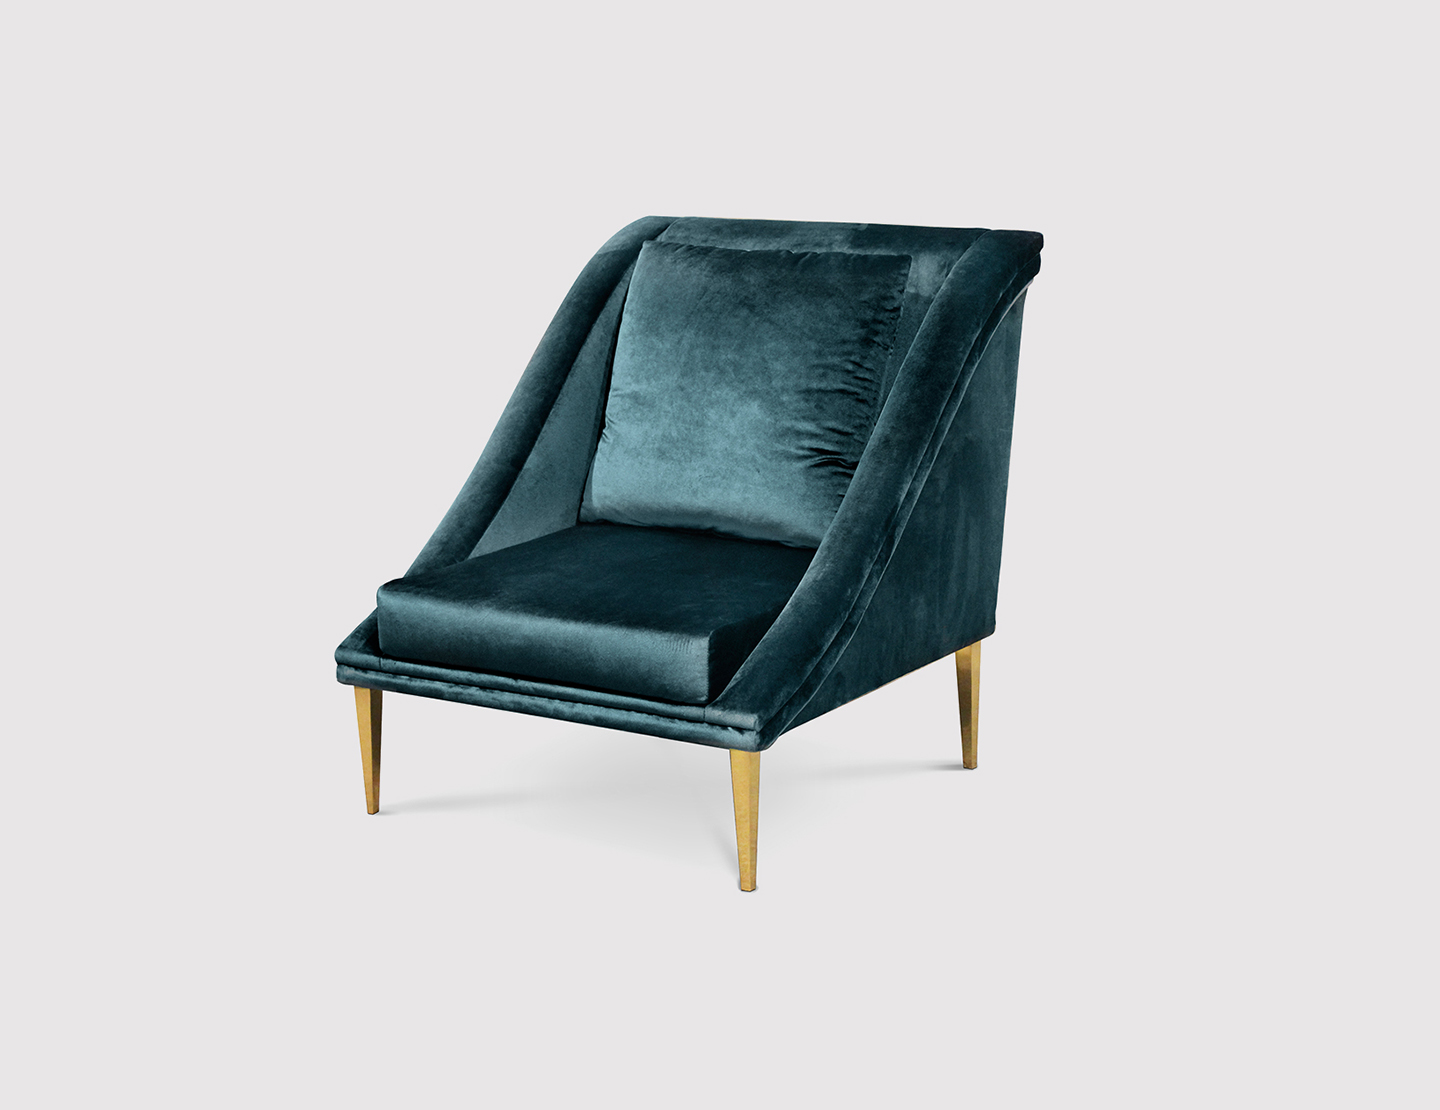 TRENDY COLORS TO USE IN 2017 INTERIOR DESIGN PROJECTS trendy colors TRENDY COLORS TO USE IN 2017 INTERIOR DESIGN PROJECTS geisha chair 1 zoom big